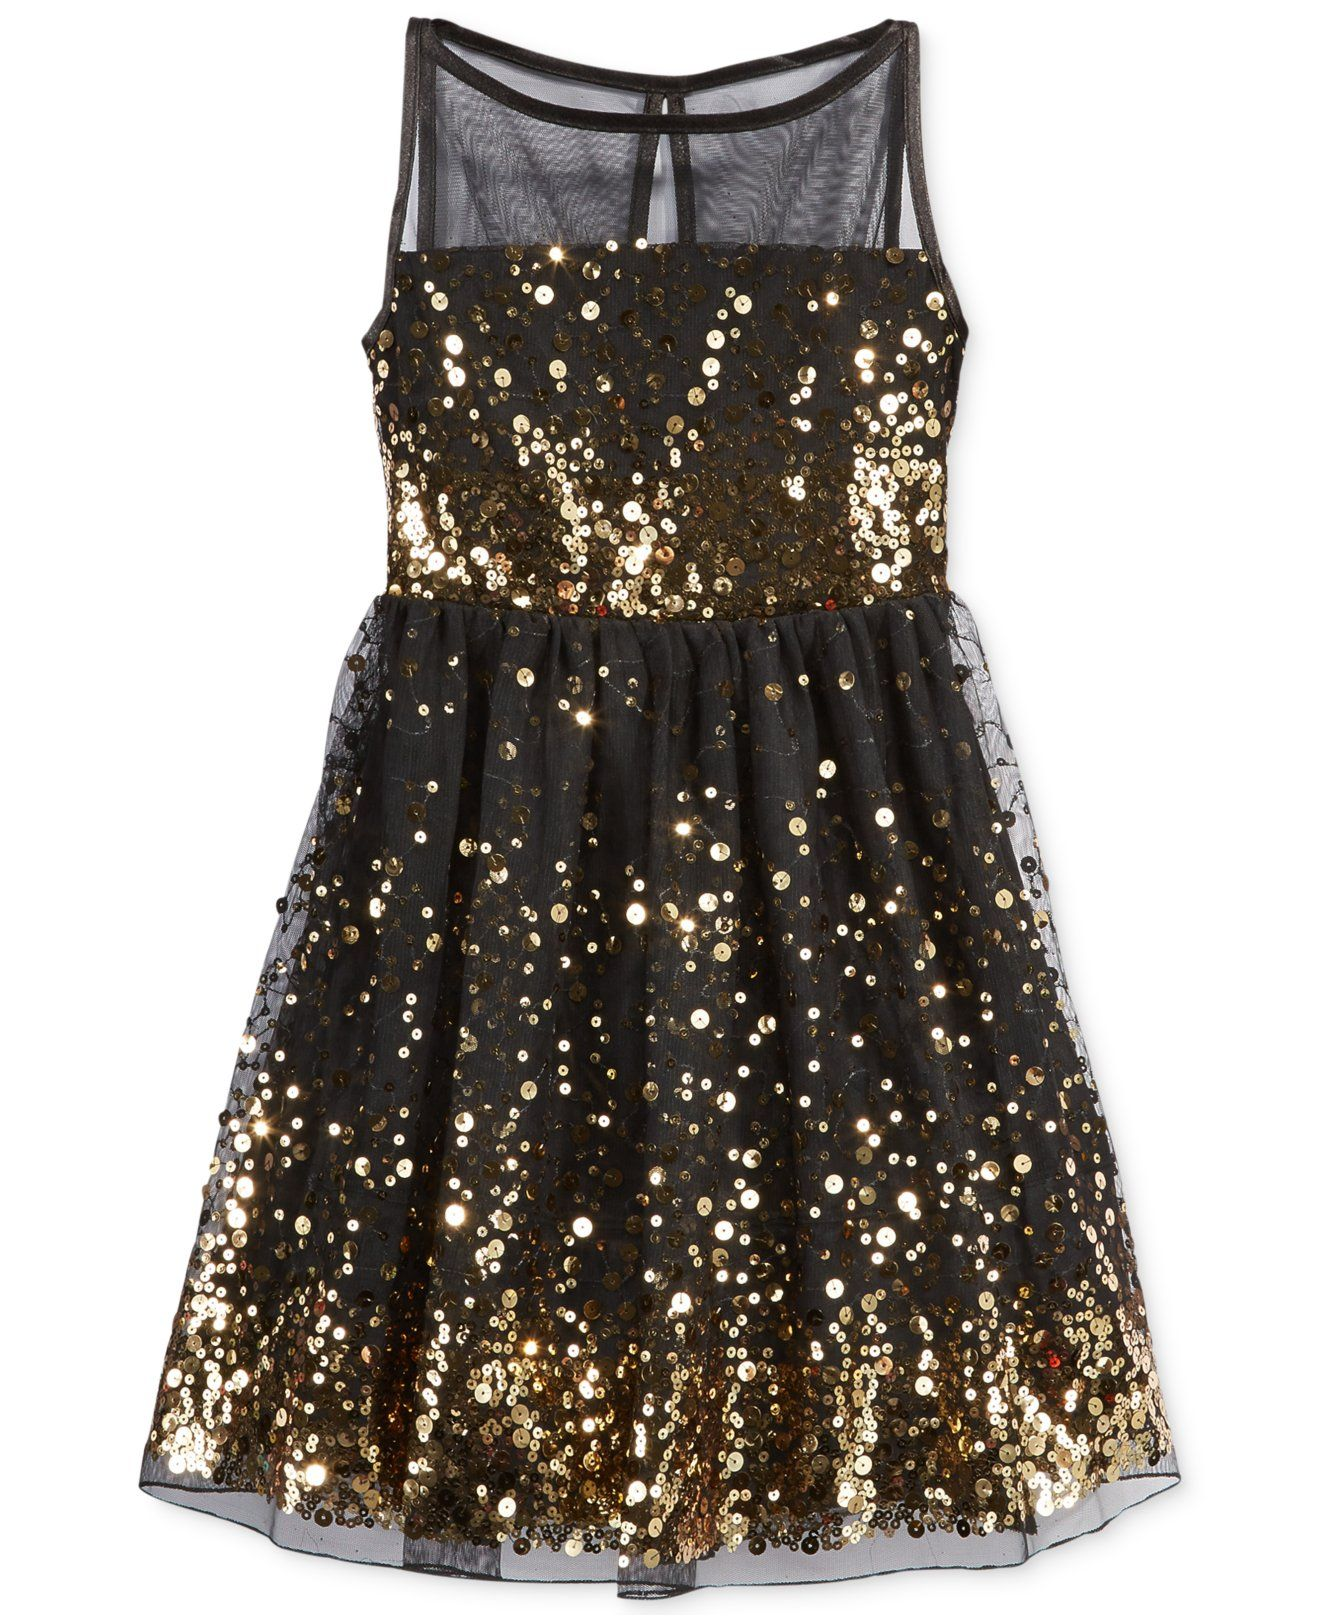 cc4718966a4b Ruby Rox Girls' Sequin Illusion Dress - Kids - Macy's | clothing ...